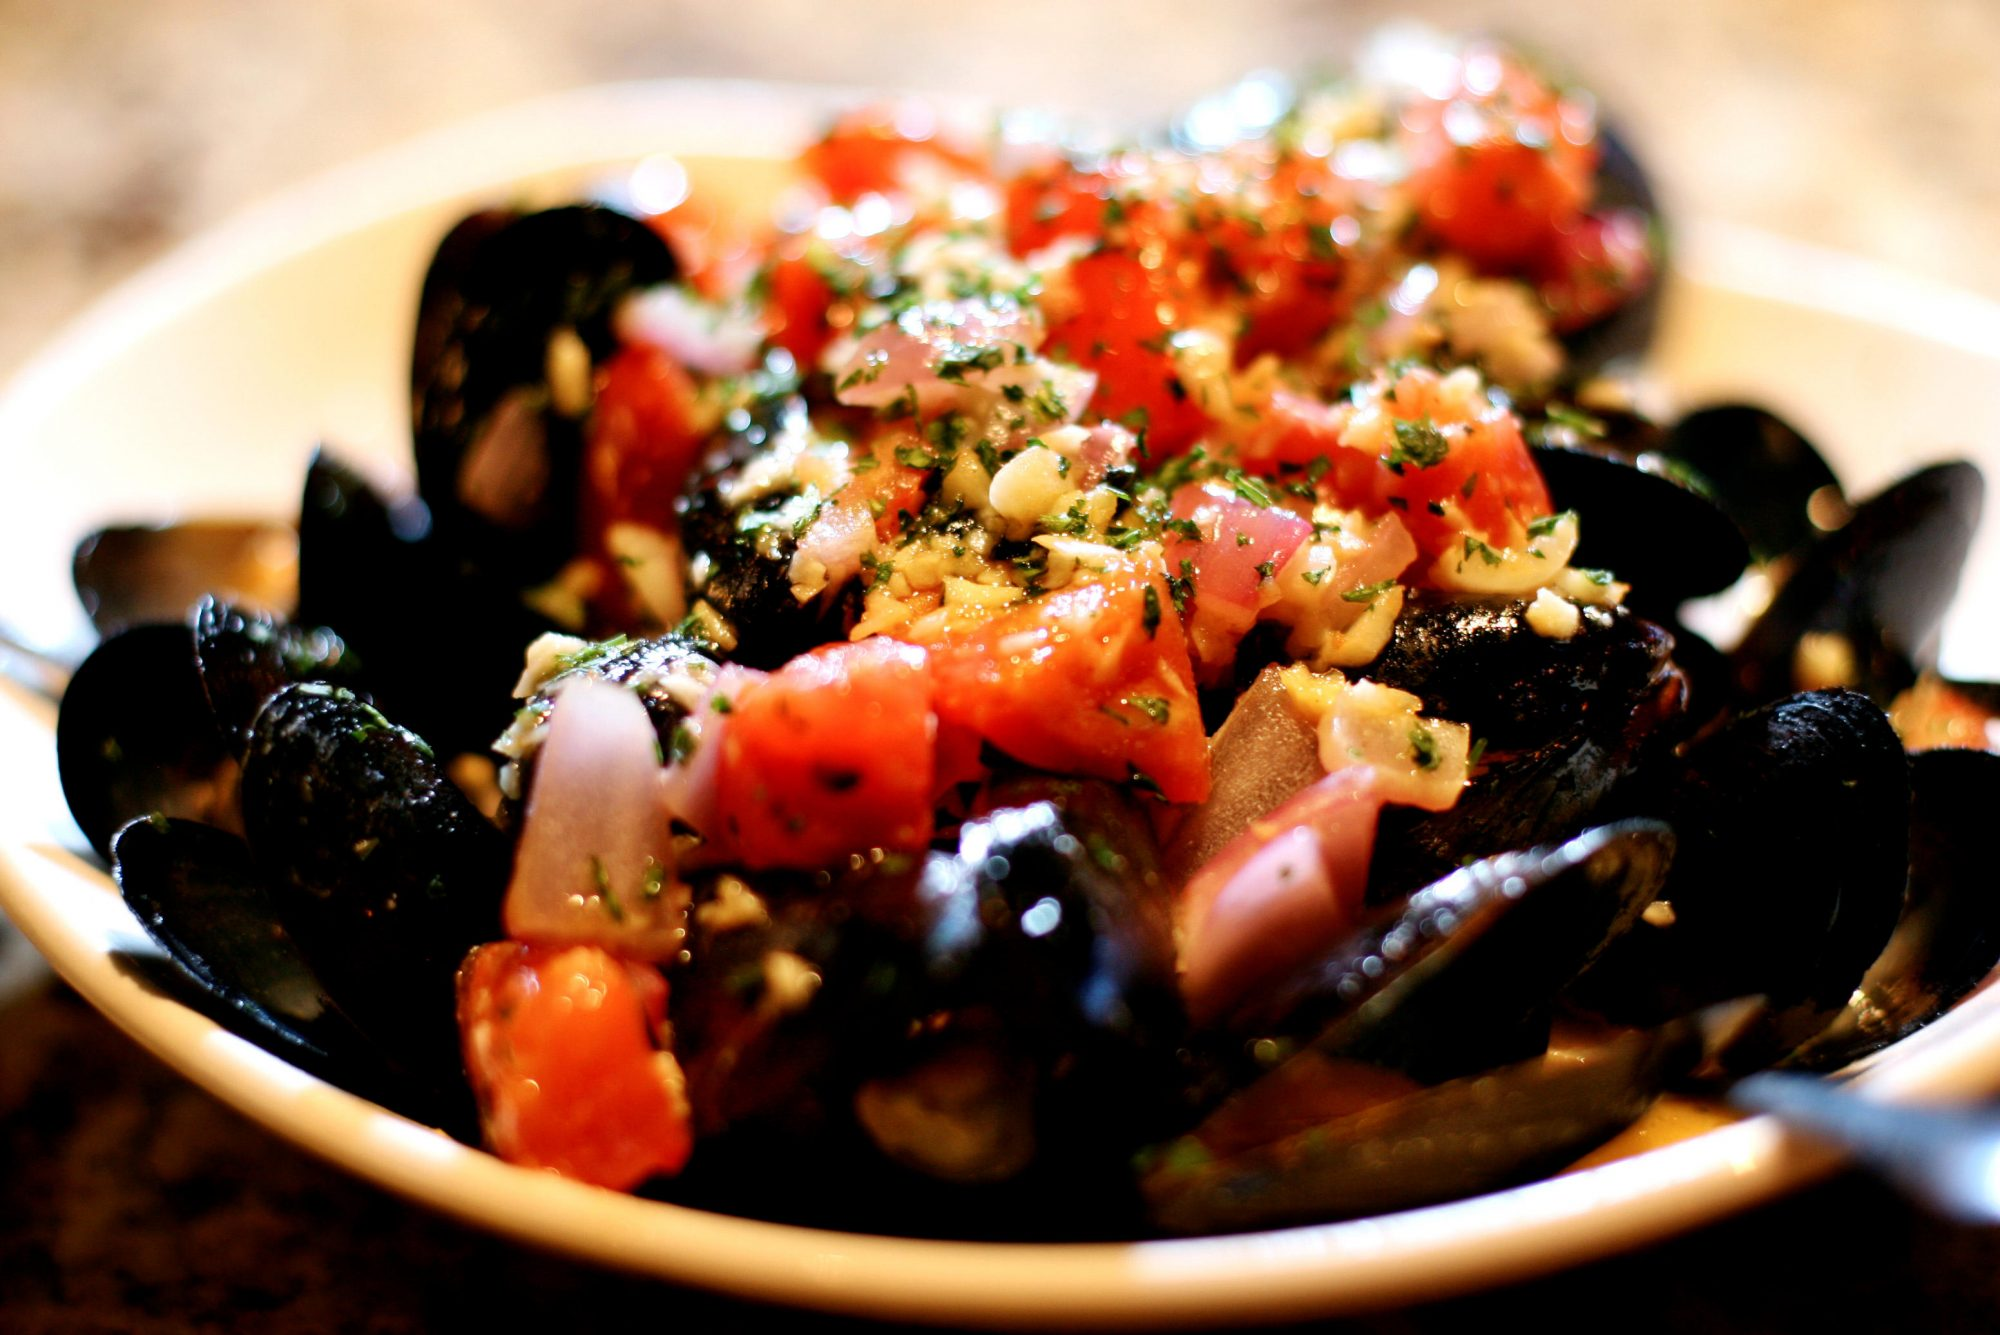 Mussels Josephine; tomatoes, garlic, basil - lemon wine sauce at Bonefish Grill in Boynton Beach.